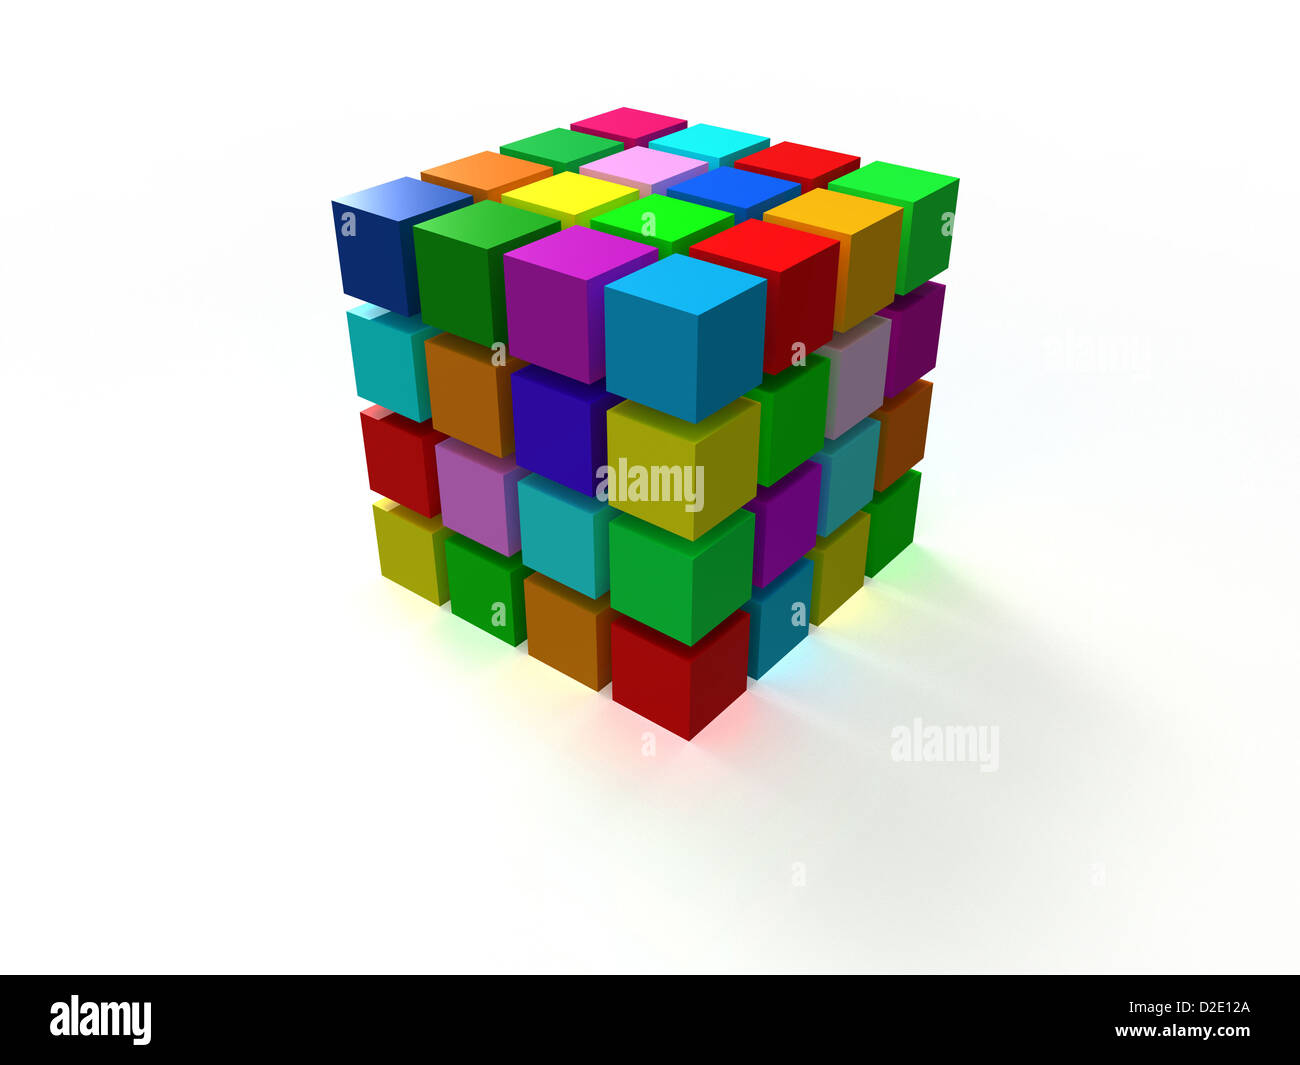 4x4 colorful ordered cube assembling from blocks isolated on white background - Stock Image